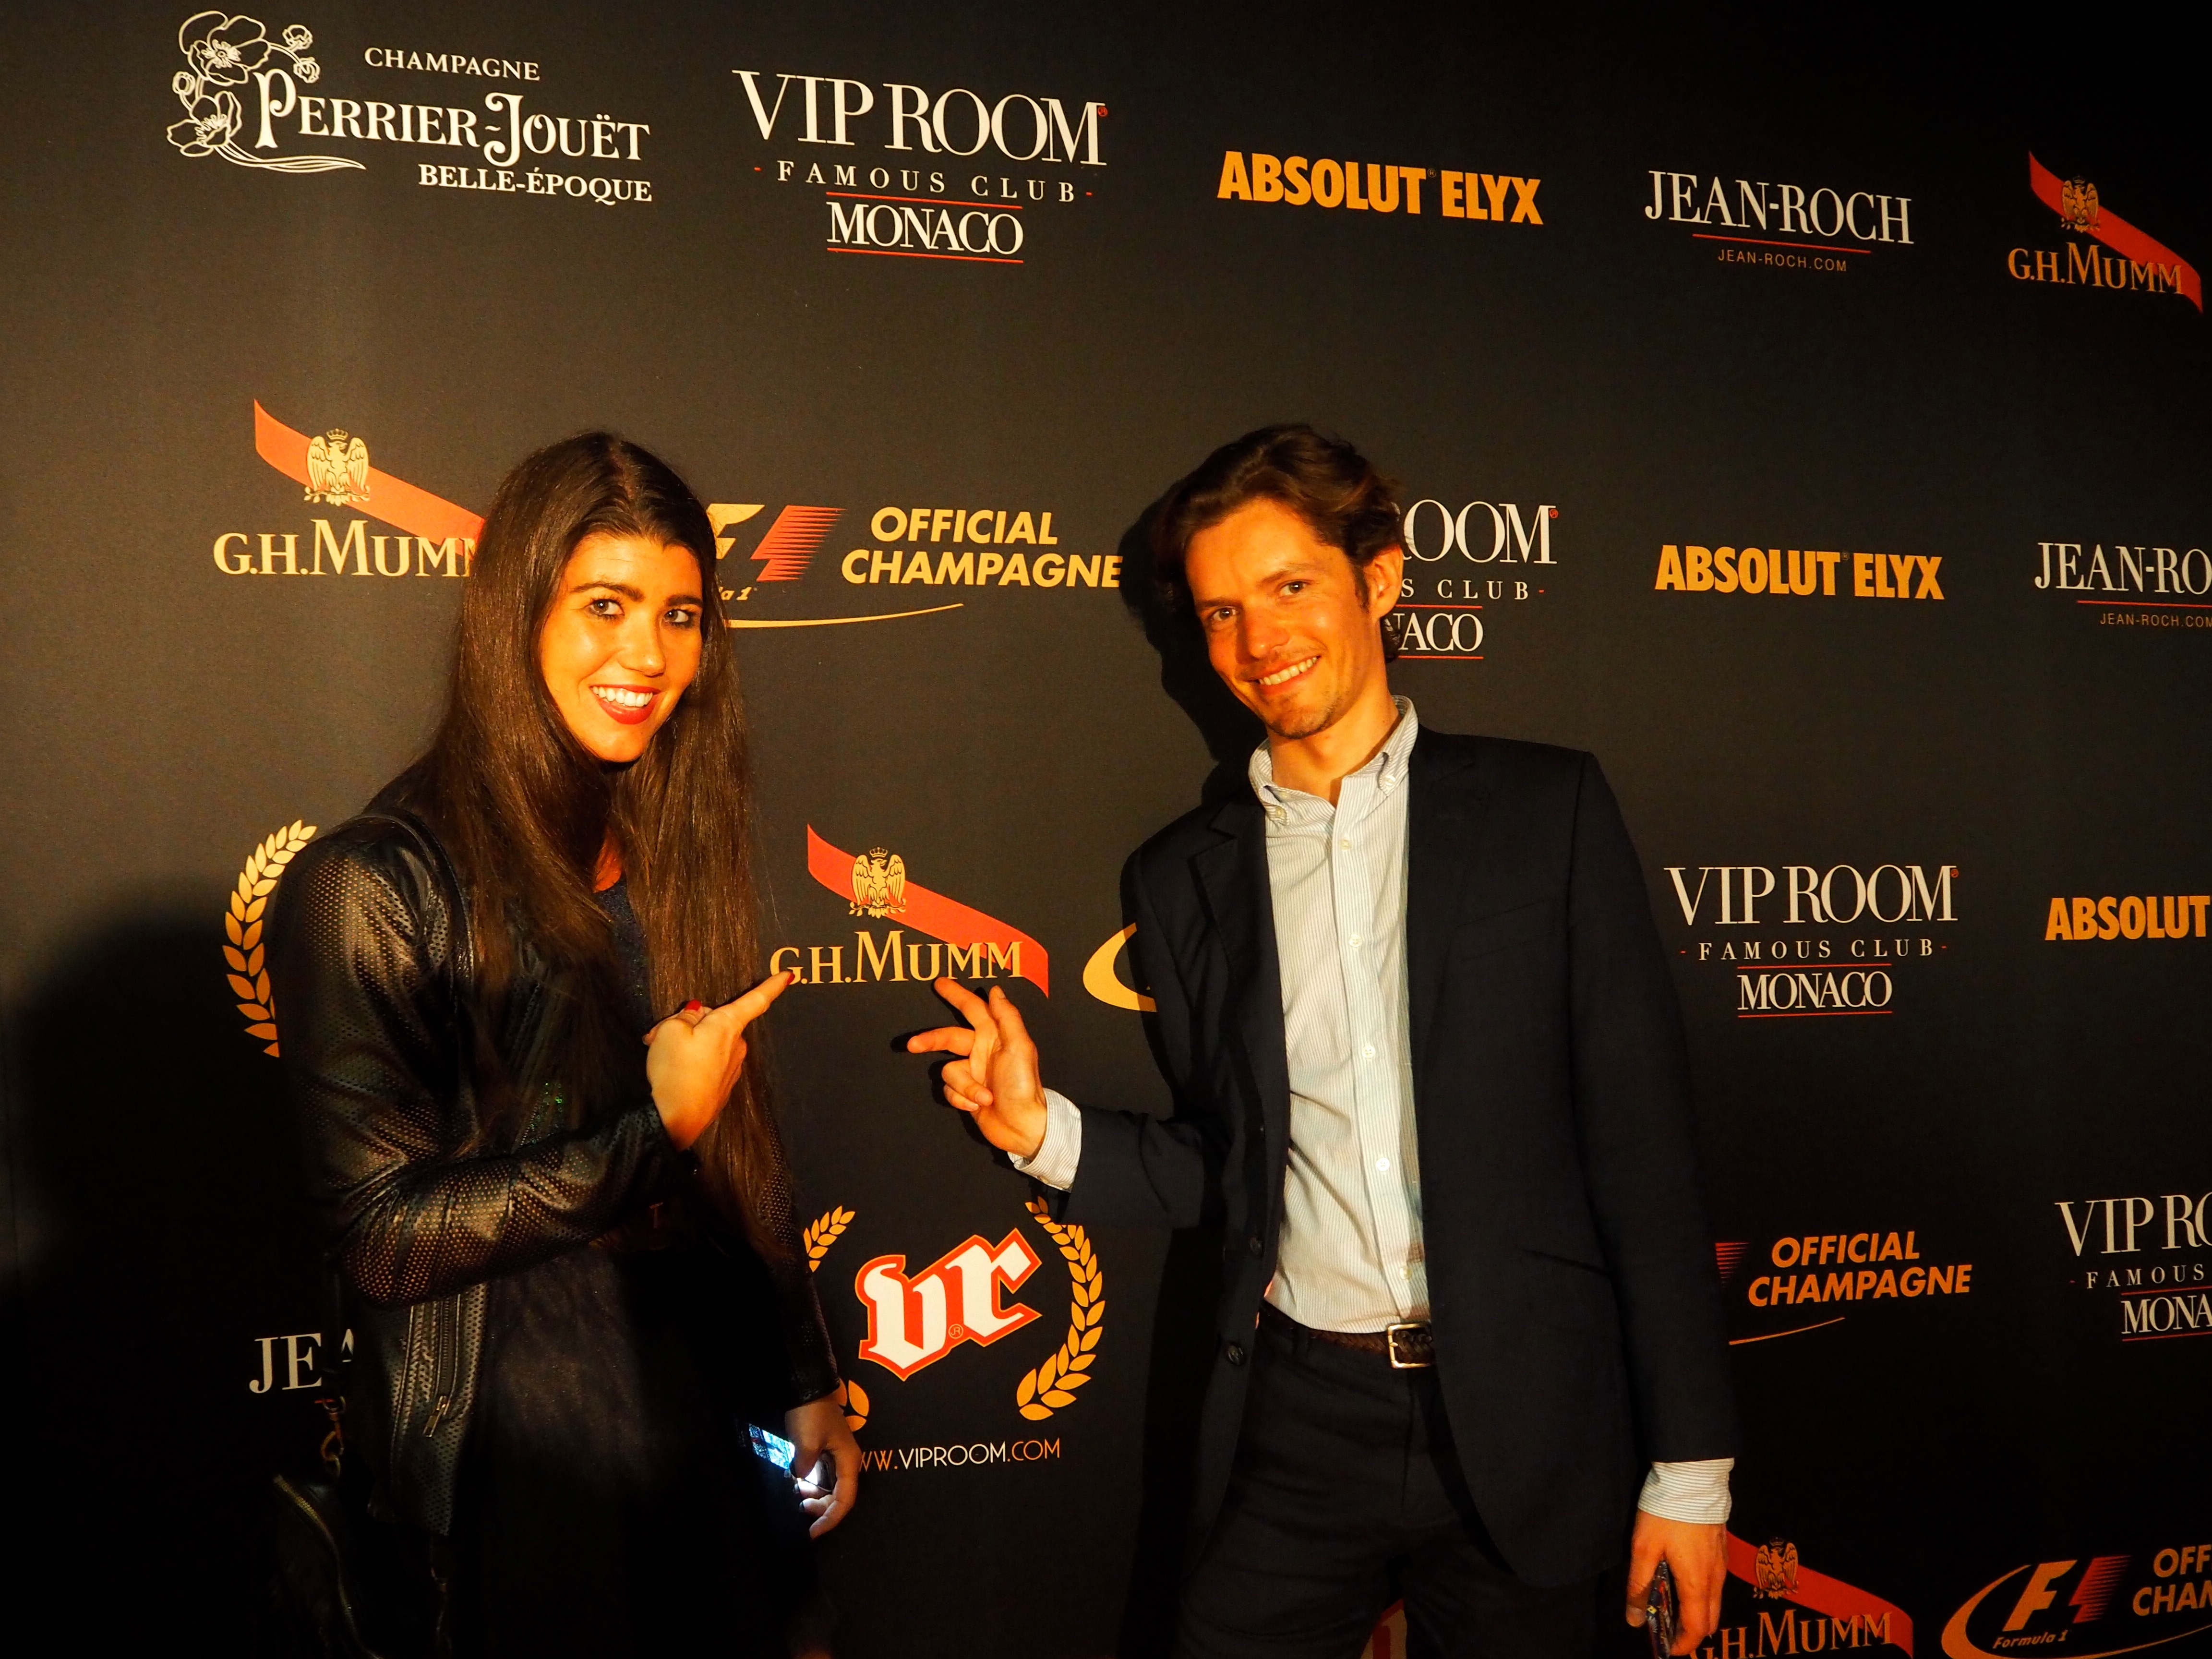 VIP ROOM MONACO PARTY WITH G.H MUMM CHAMPAGNE